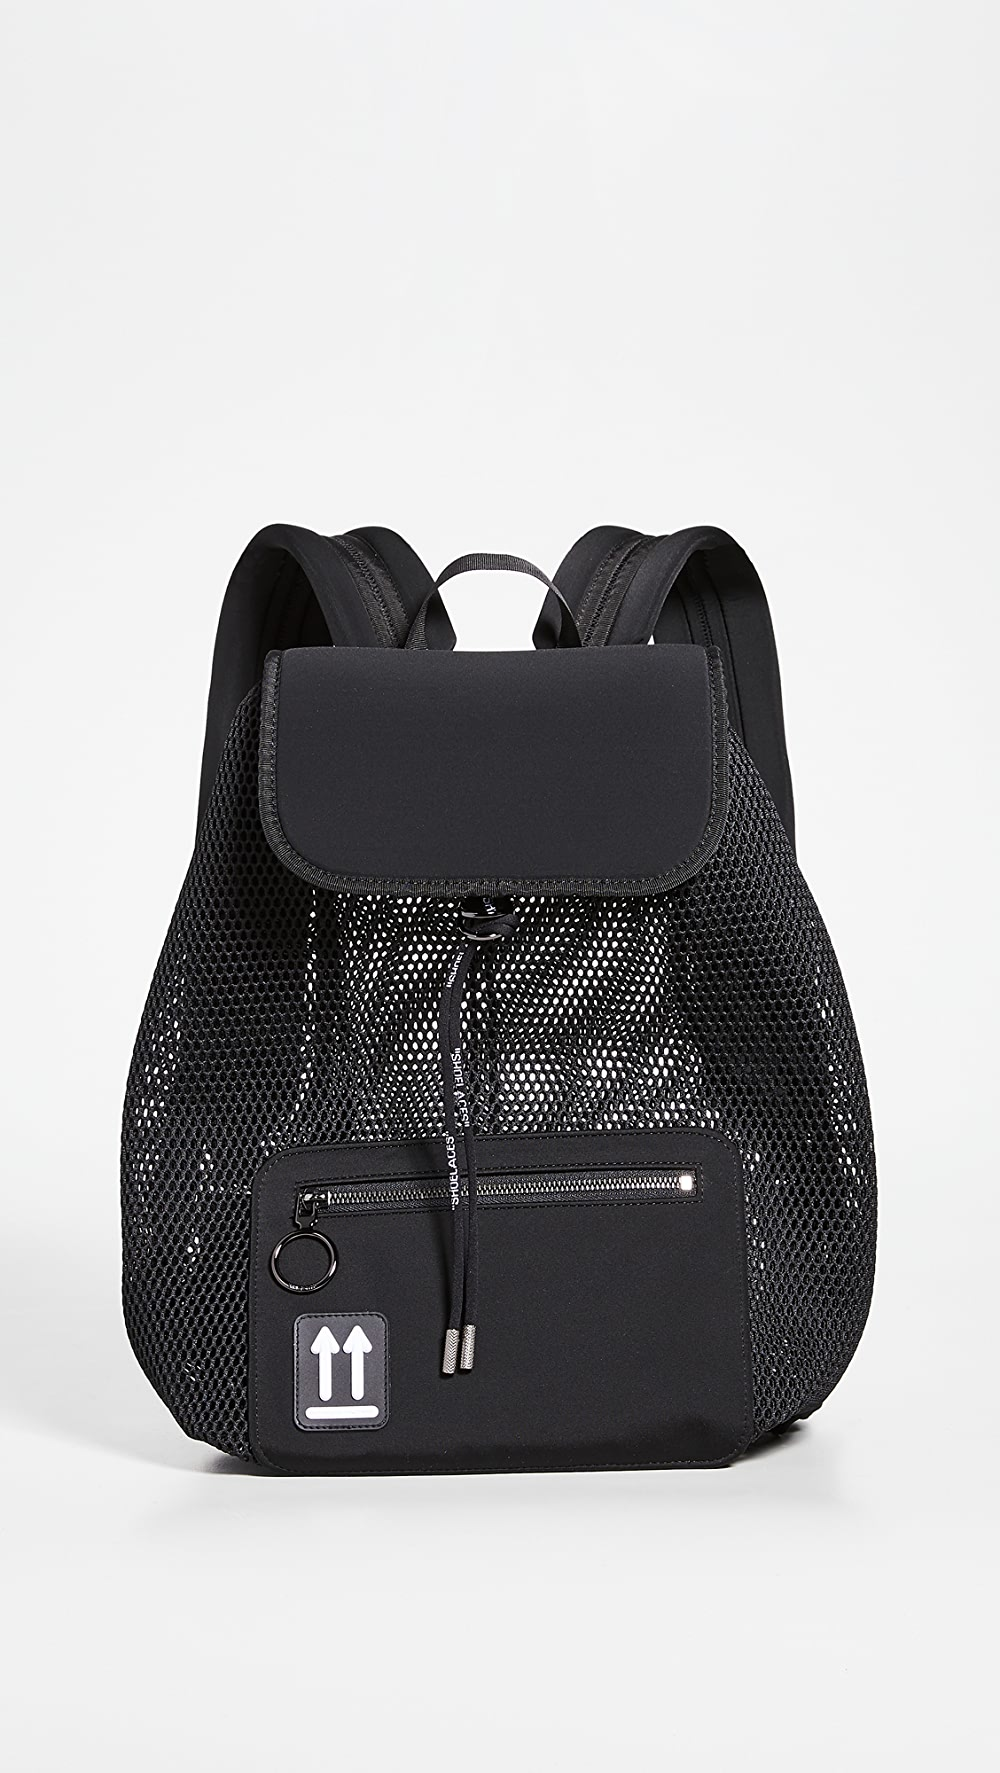 2019 Fashion Off-white - Scuba Backpack Excellent (In) Quality